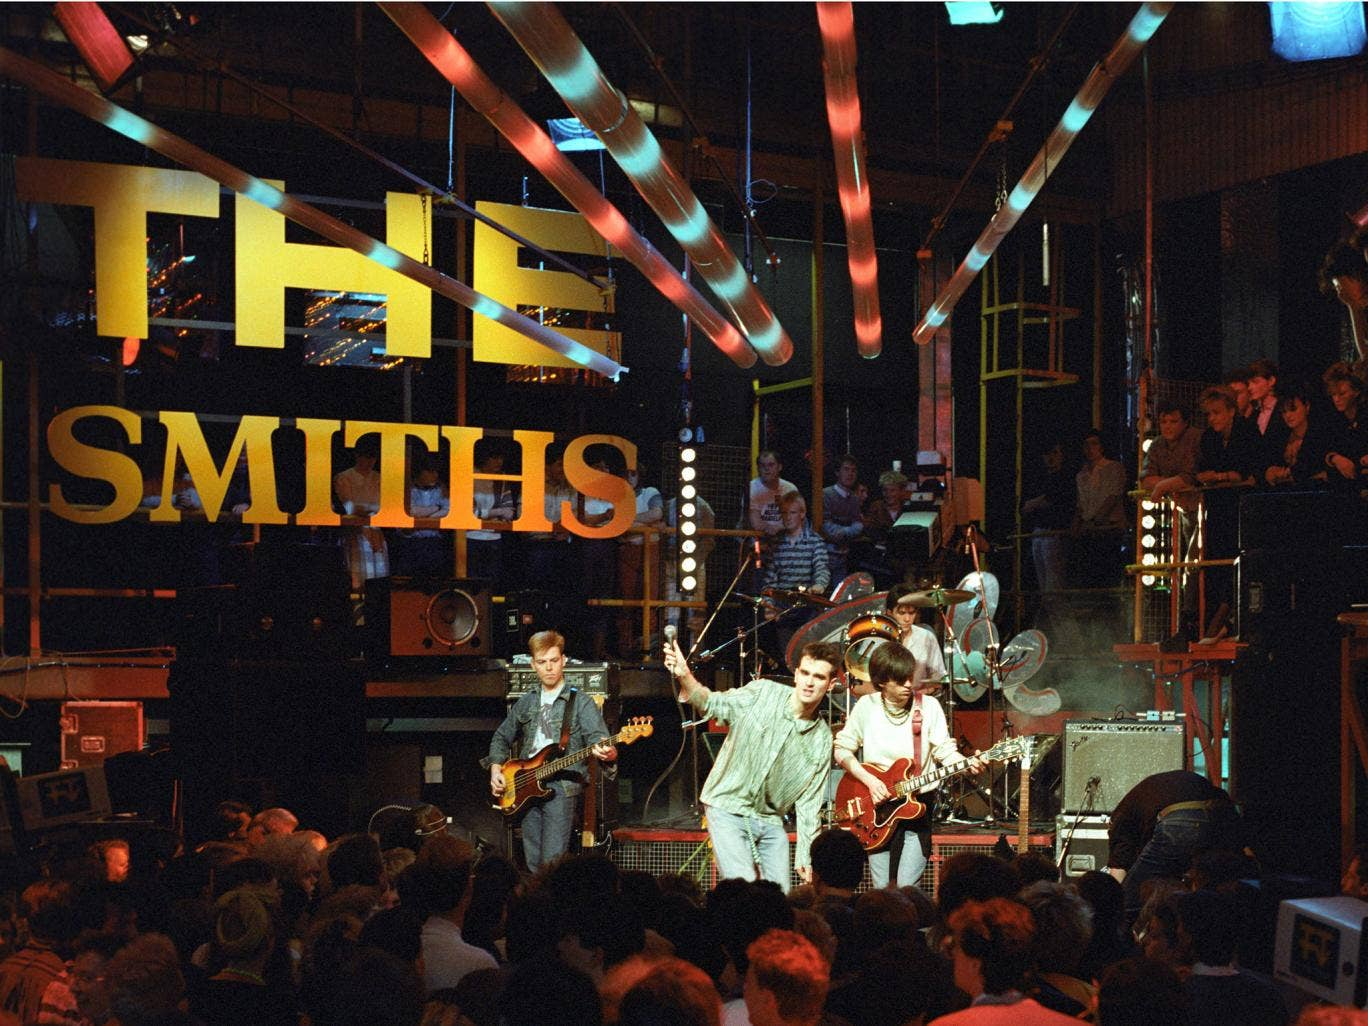 Seen live for the last time? The Smiths